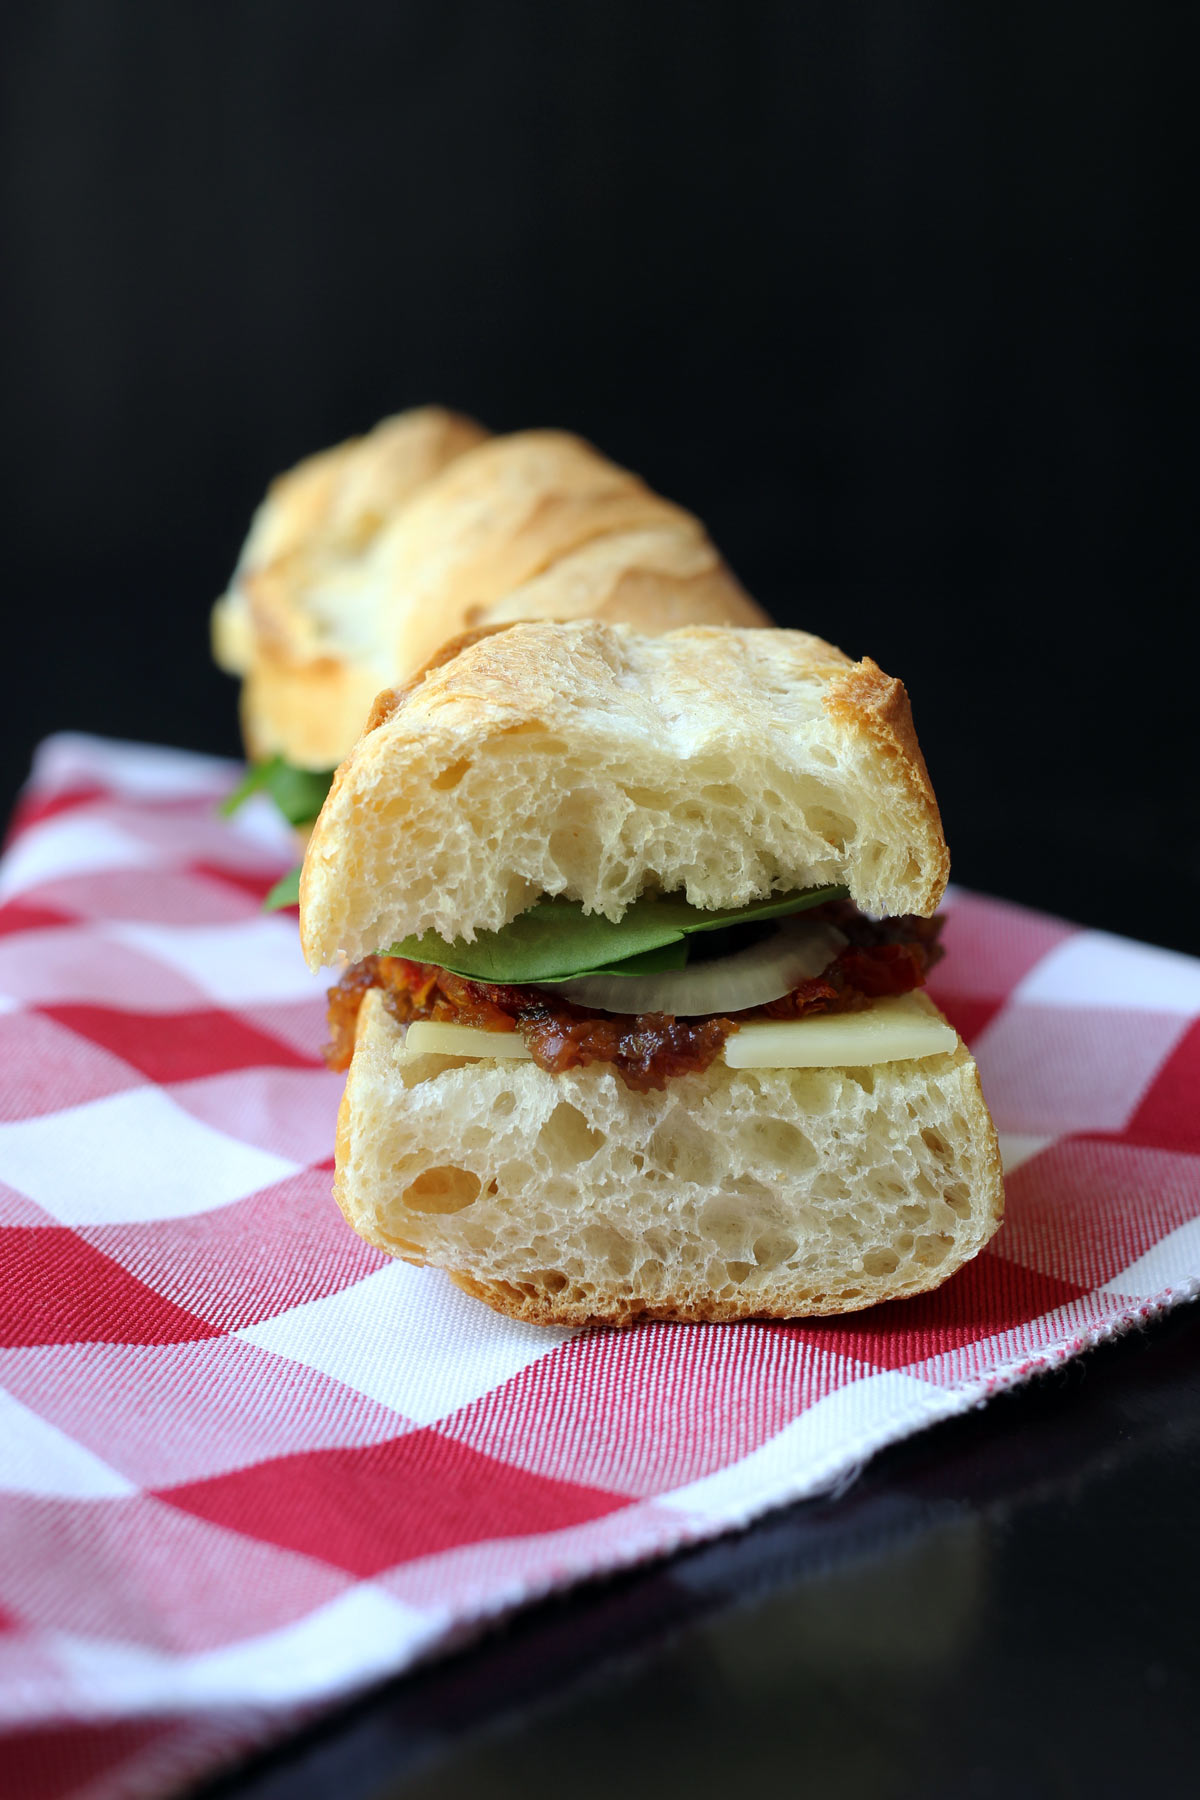 baguette sandwich with open end facing to show laters of cheese, English pickle, onion, and spinach.